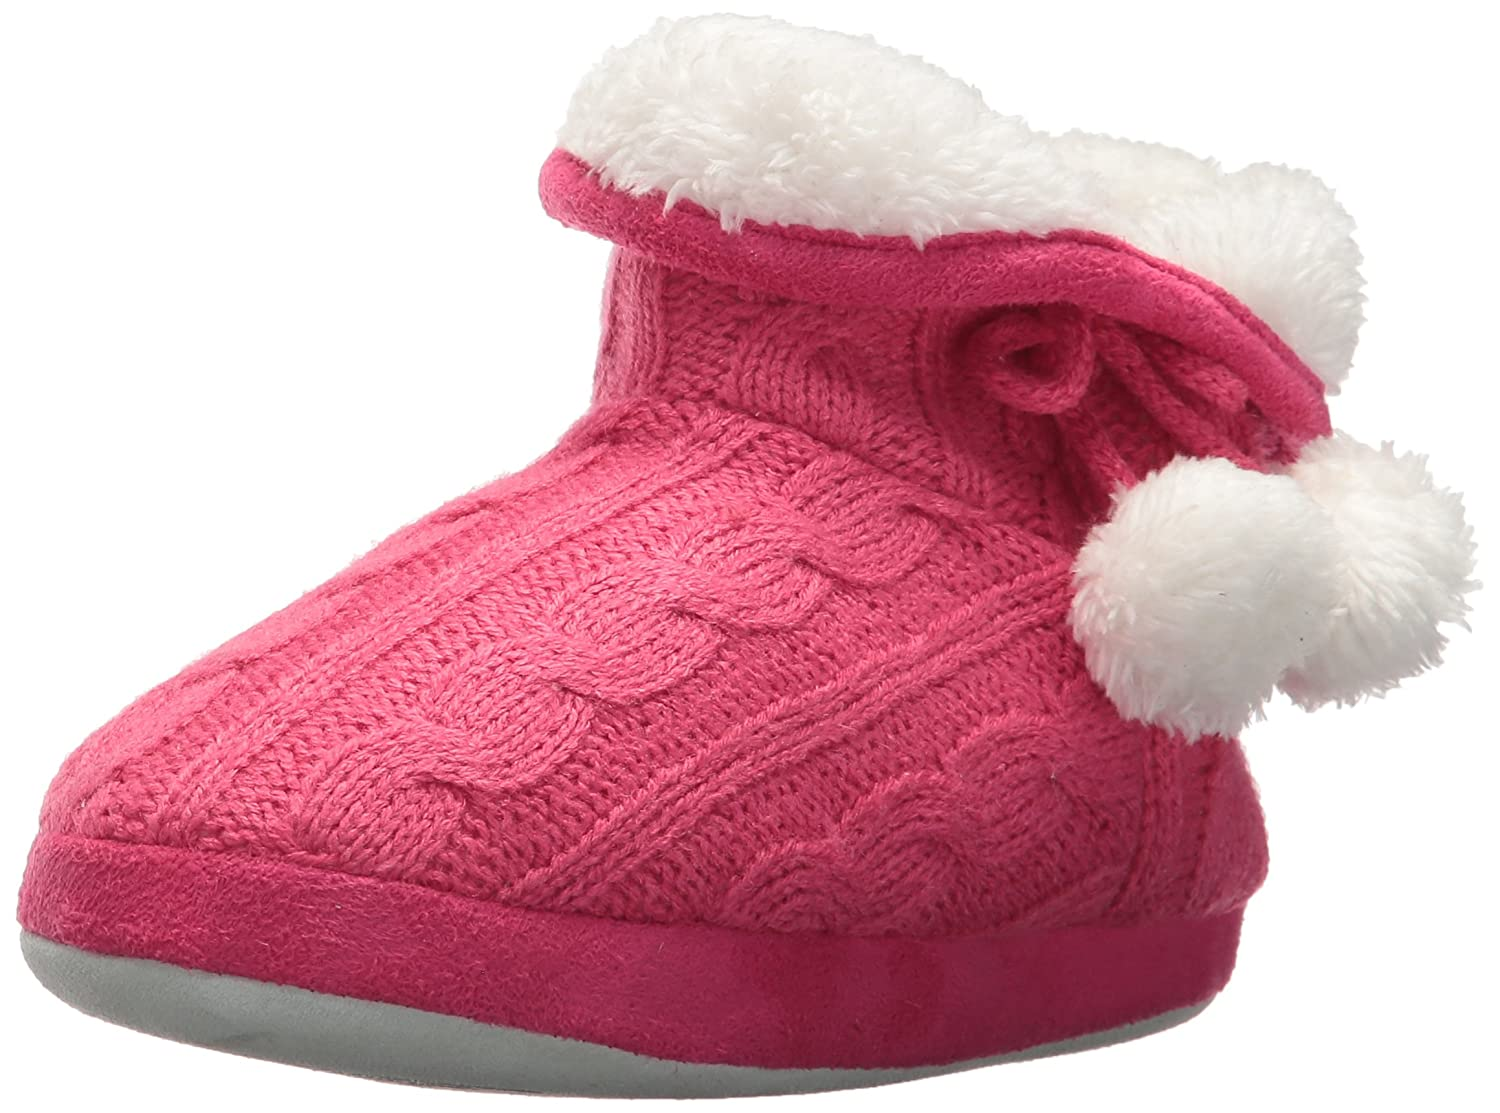 Stride Rite Girls' Cozy Boot Slippers